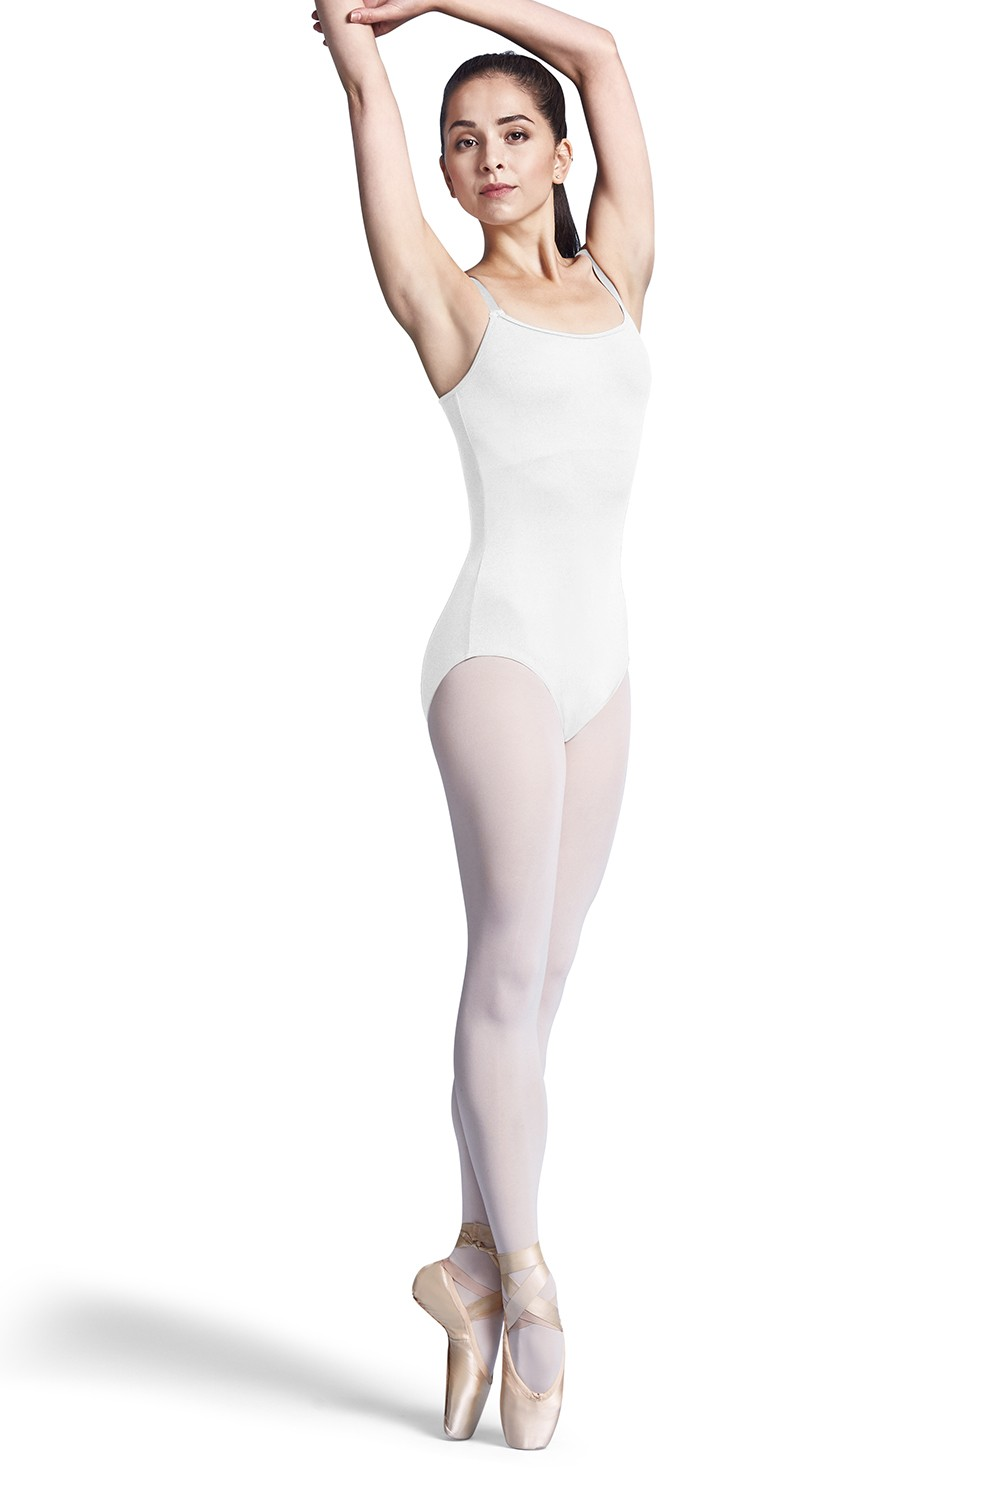 Yashina Women's Dance Leotards